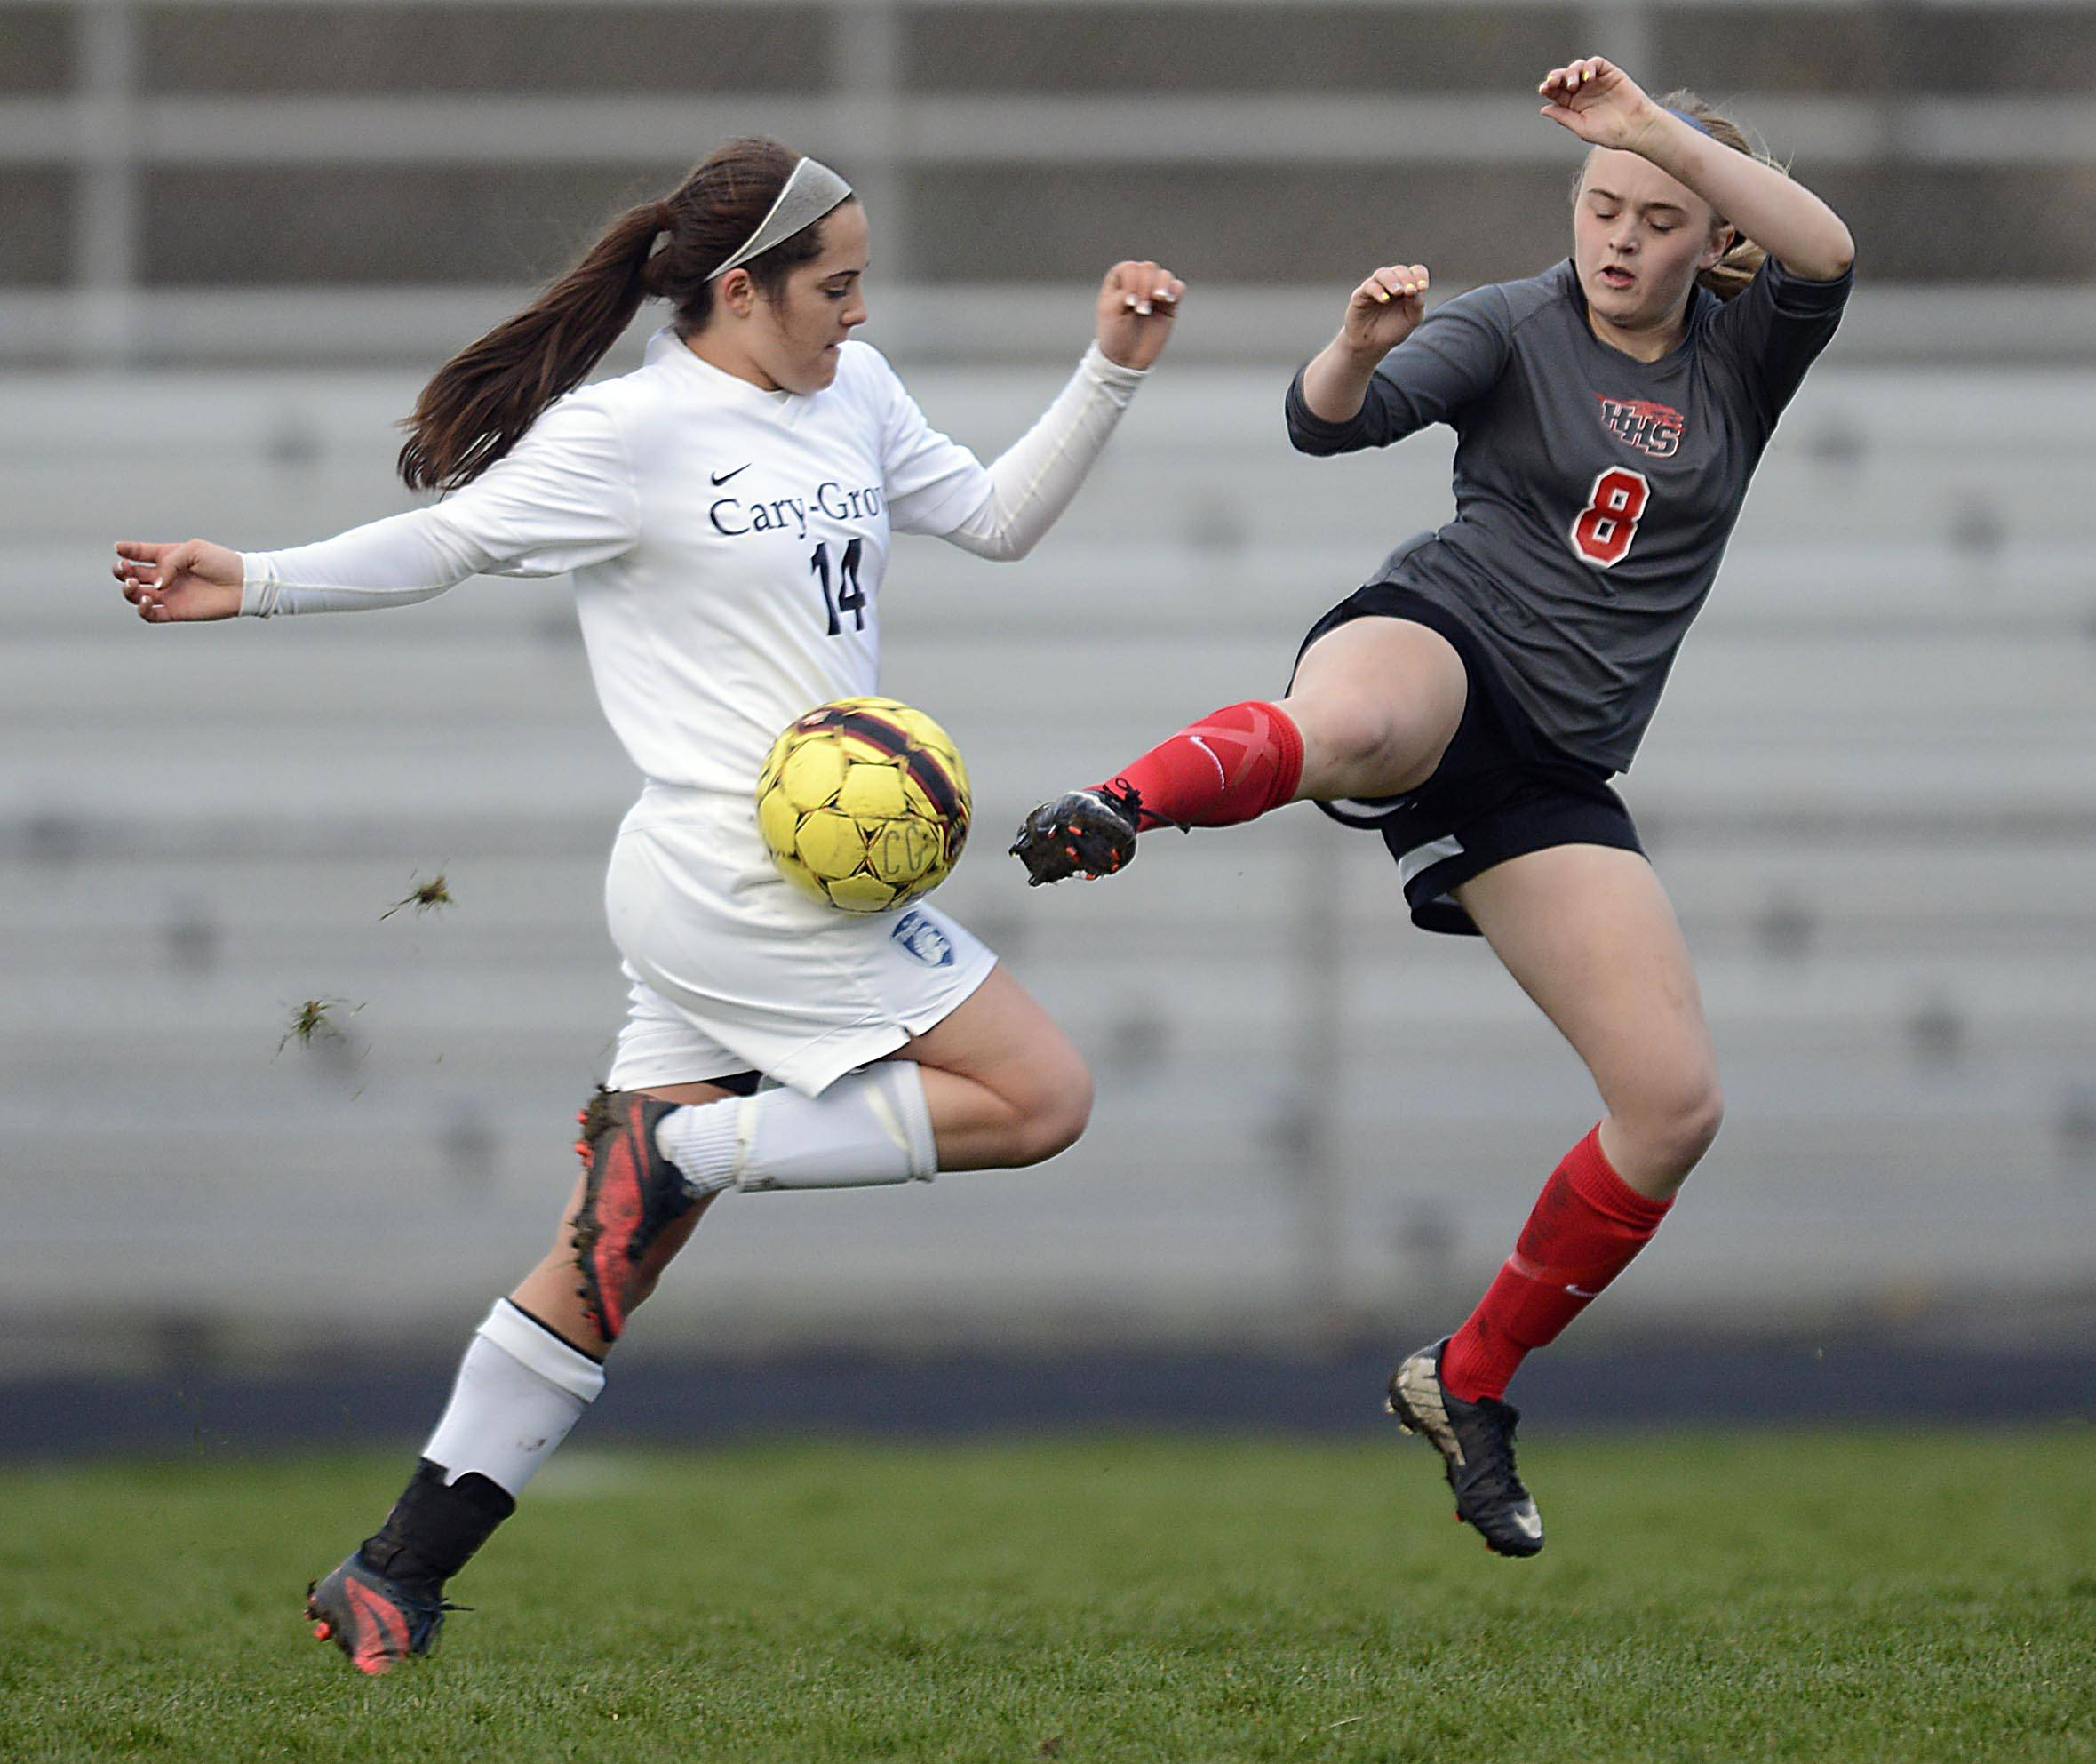 Cary-Grove's Ellie Baily and Huntley's Alyssa Kaufman fight for a loose ball Thursday in Cary.